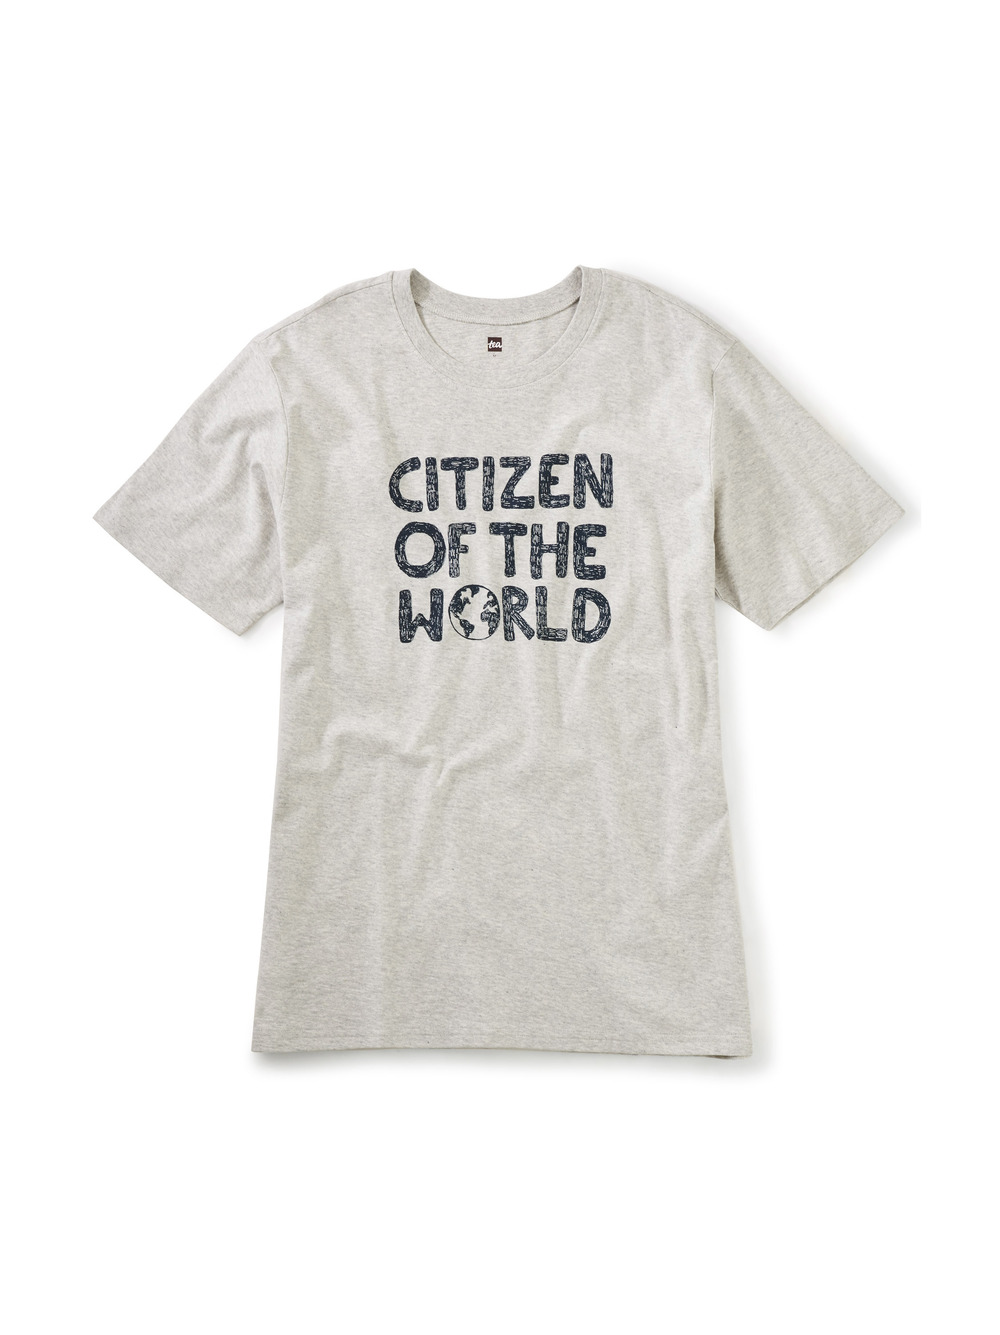 Adult Citizen of the World Tee